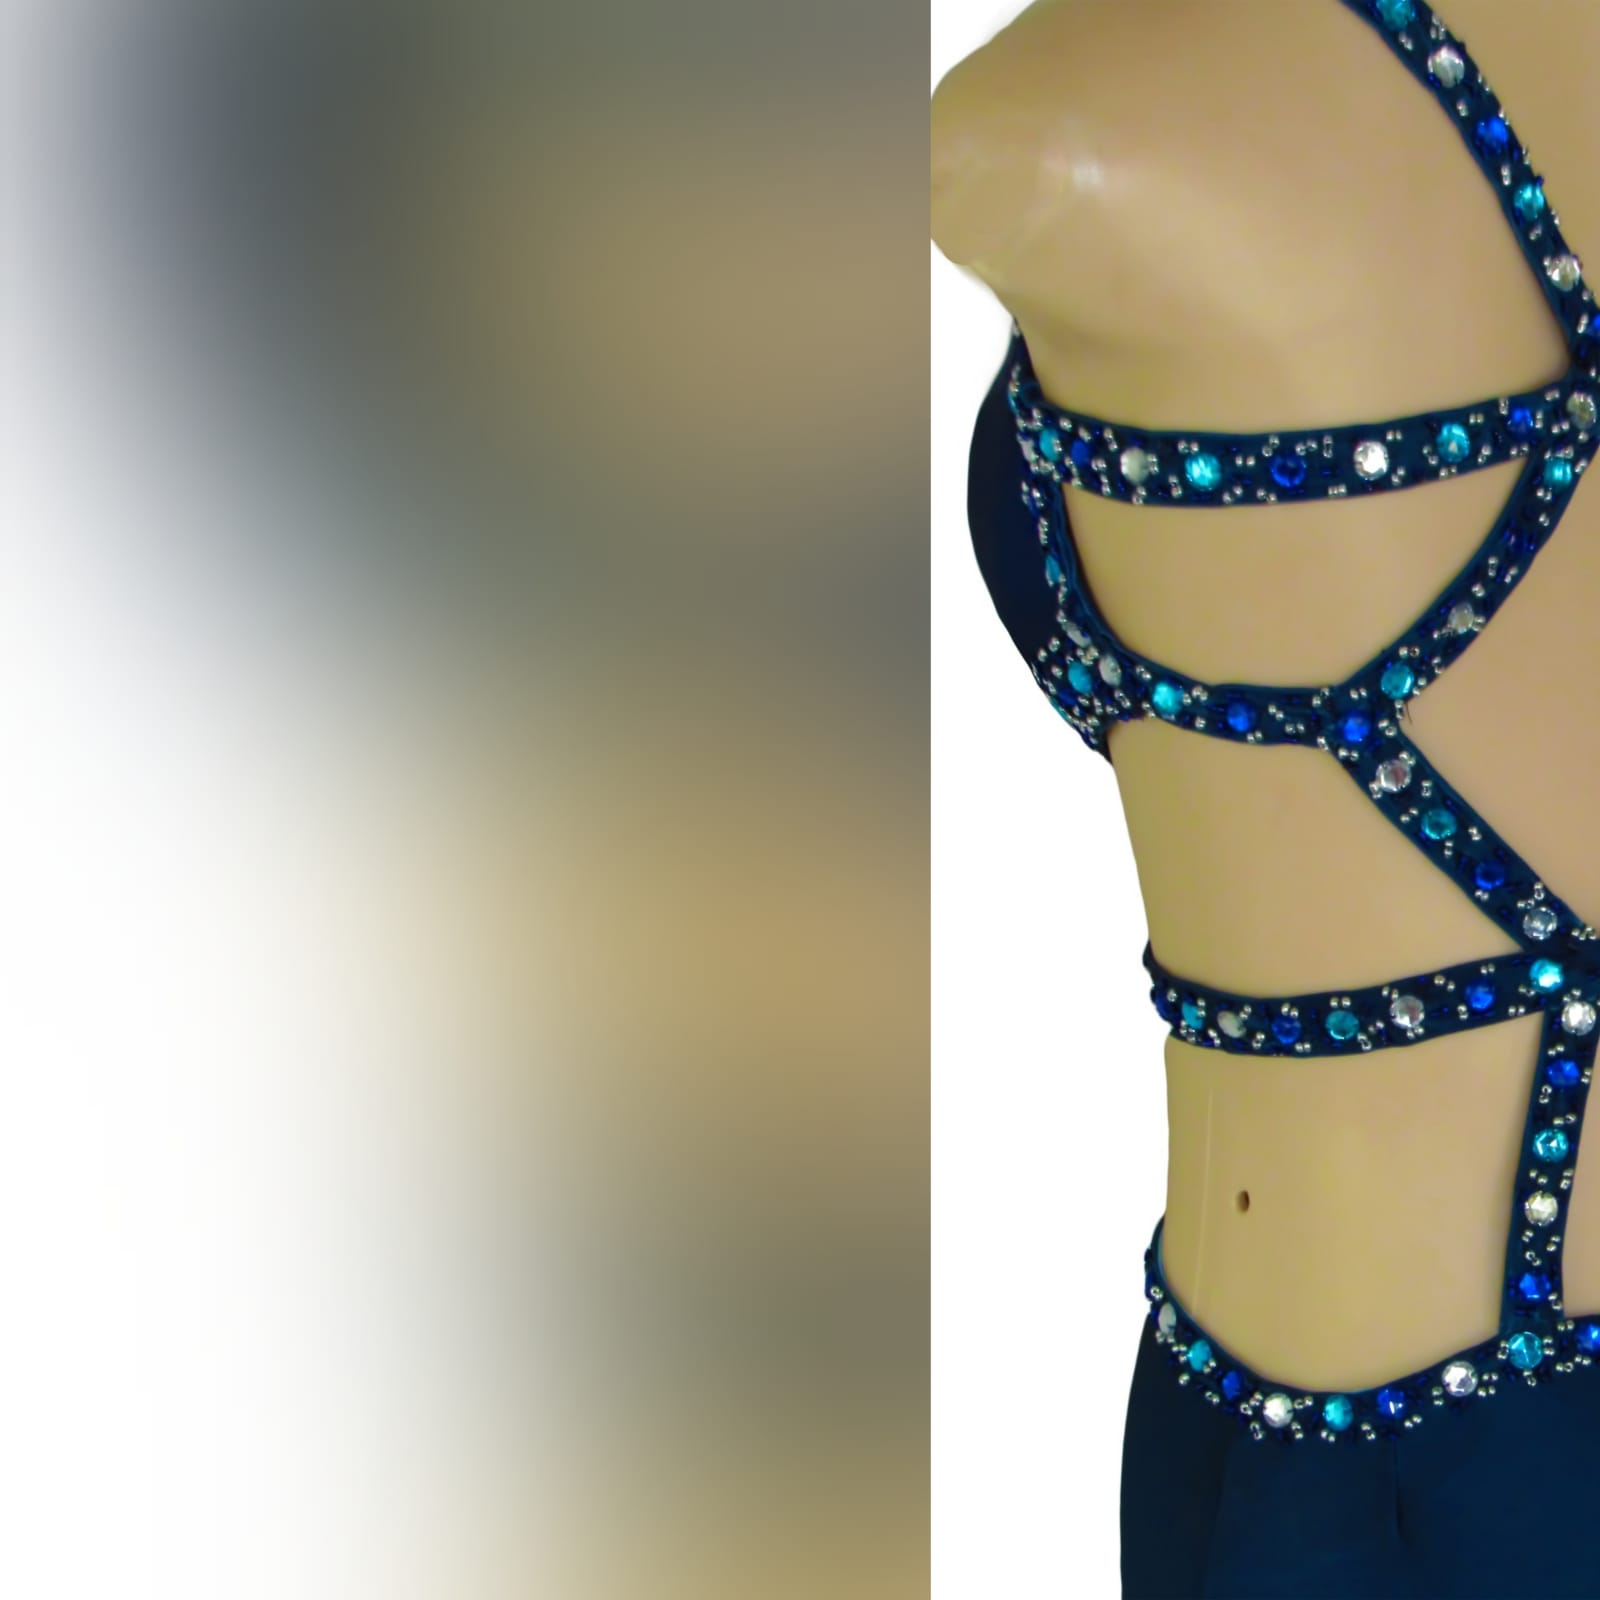 Royal blue and navy blue ombre sexy prom dress 6 royal blue and navy blue ombre sexy prom dress. With a slit and a train. With tummy and back openings detailed with silver, blue and turquoise beads.